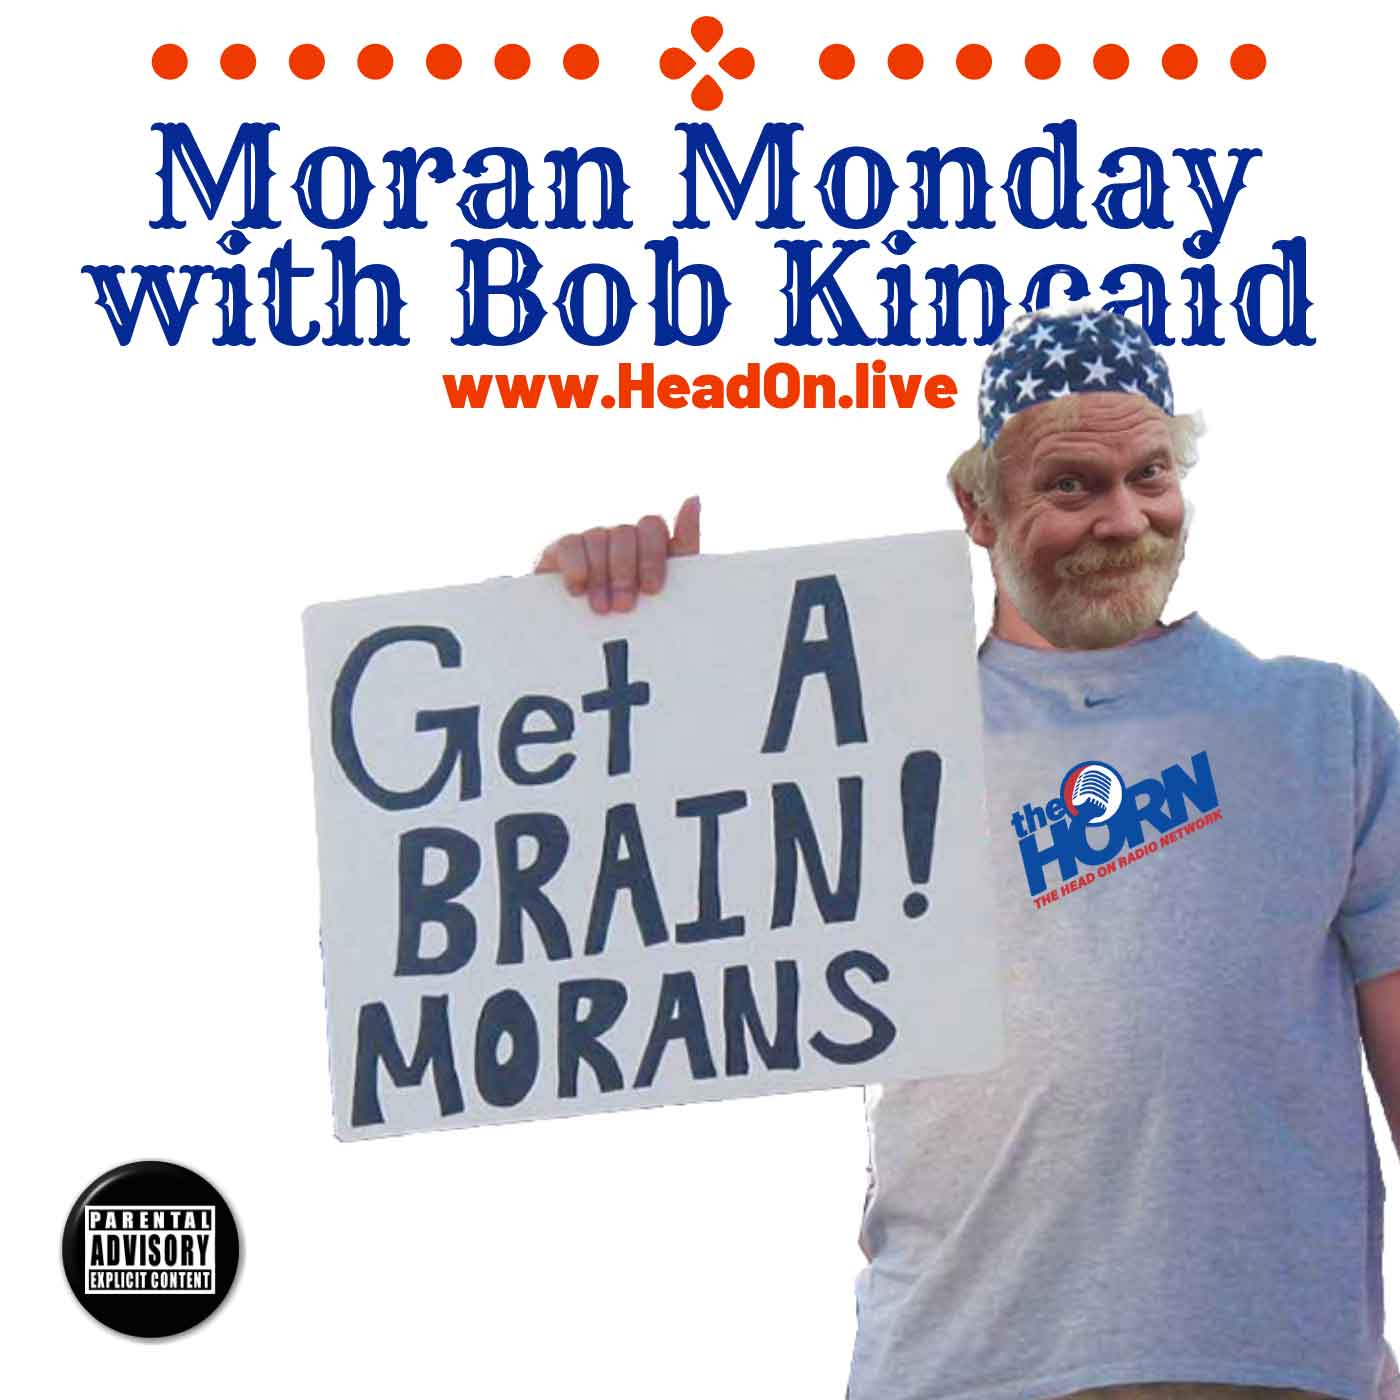 Too Many Morans for a Single Monday, Head-ON With Bob Kincaid, 6 April 2020